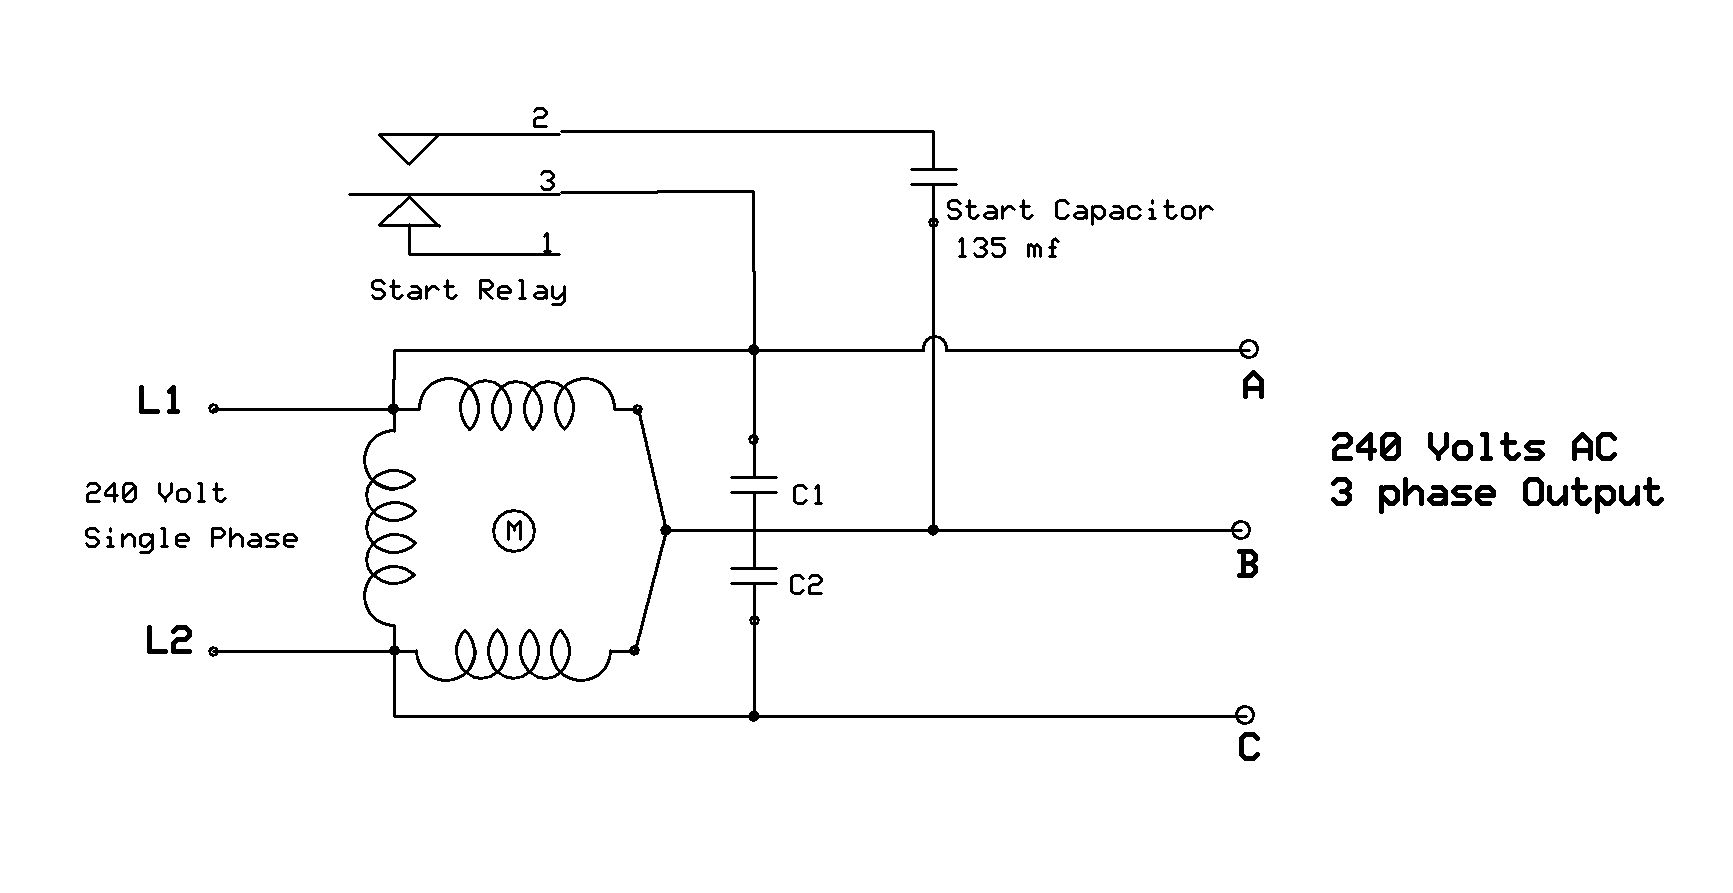 4823d1214499842 need some direction rpc build 1ph_3phmotor need some direction with rpc build phoenix phase converter wiring diagram at reclaimingppi.co